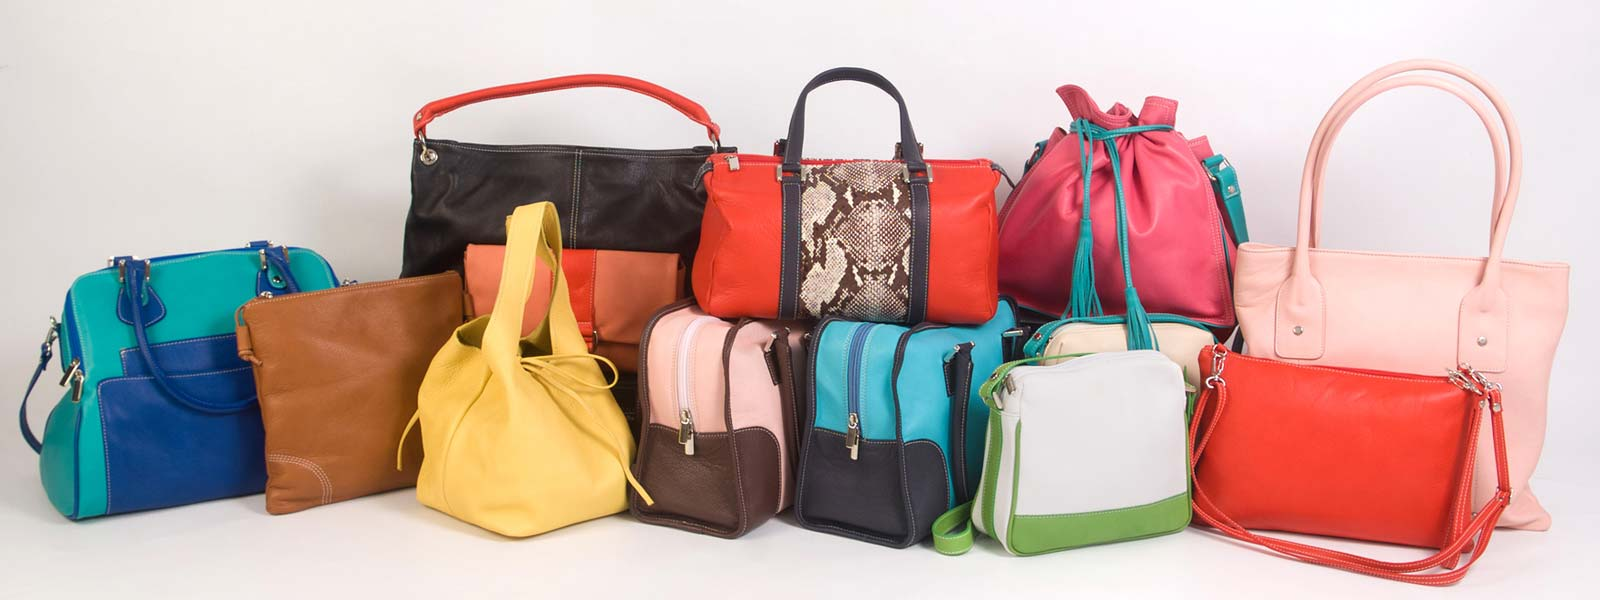 Spanish Handbags Cool Purses Chic